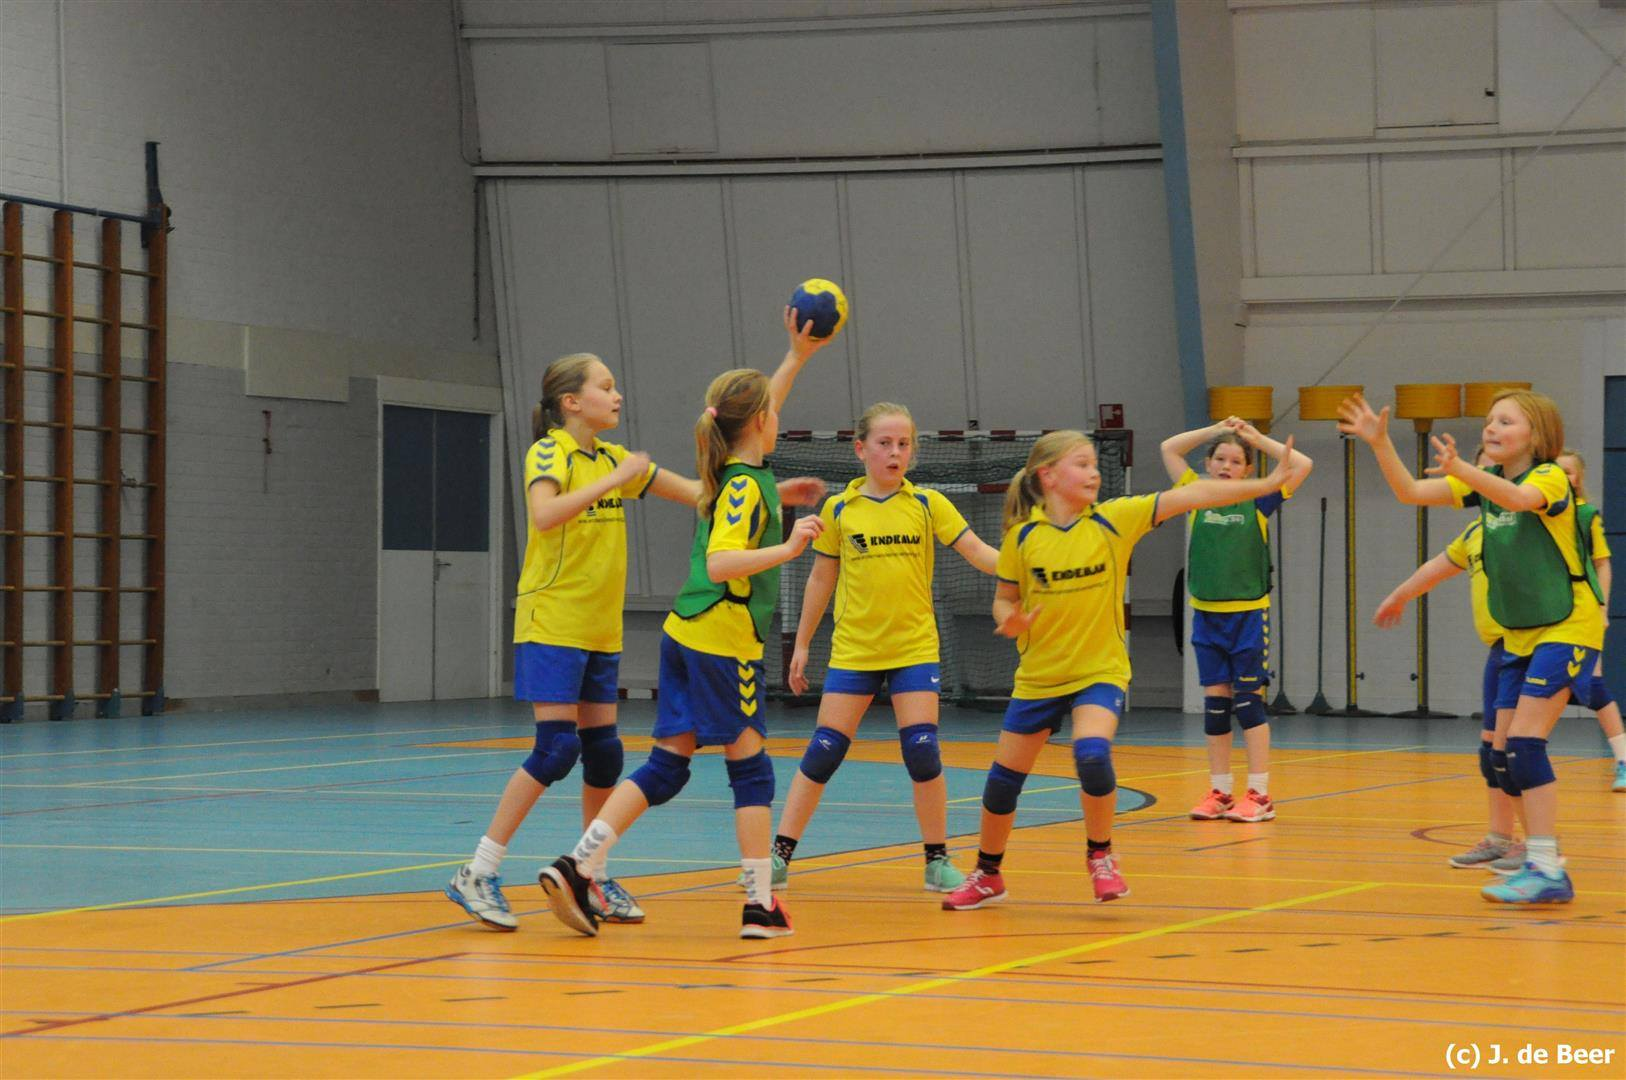 16178572 369446733447889 1524993855012209272 o - Trainingsrooster 2017/2018 staat online!